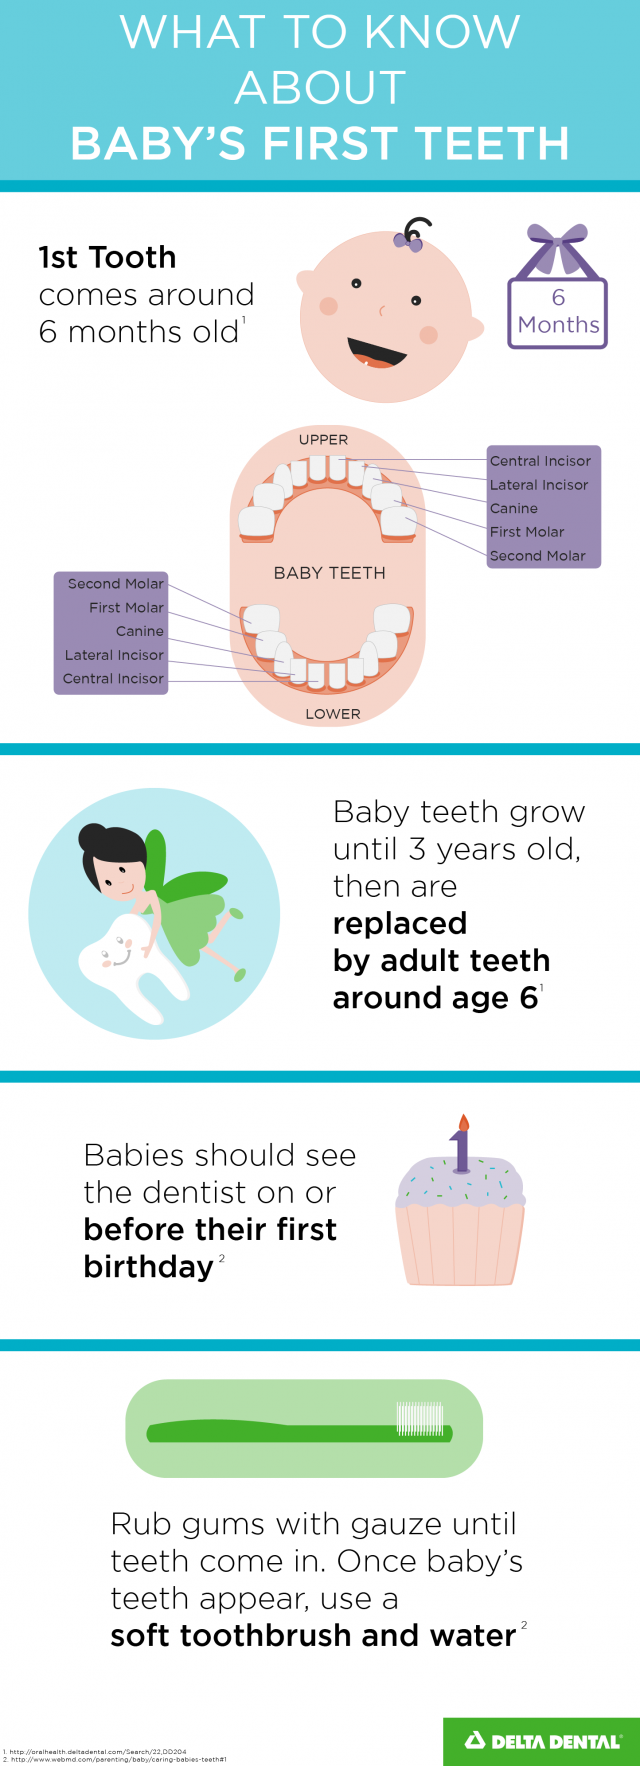 What to know about baby's first teeth infographic